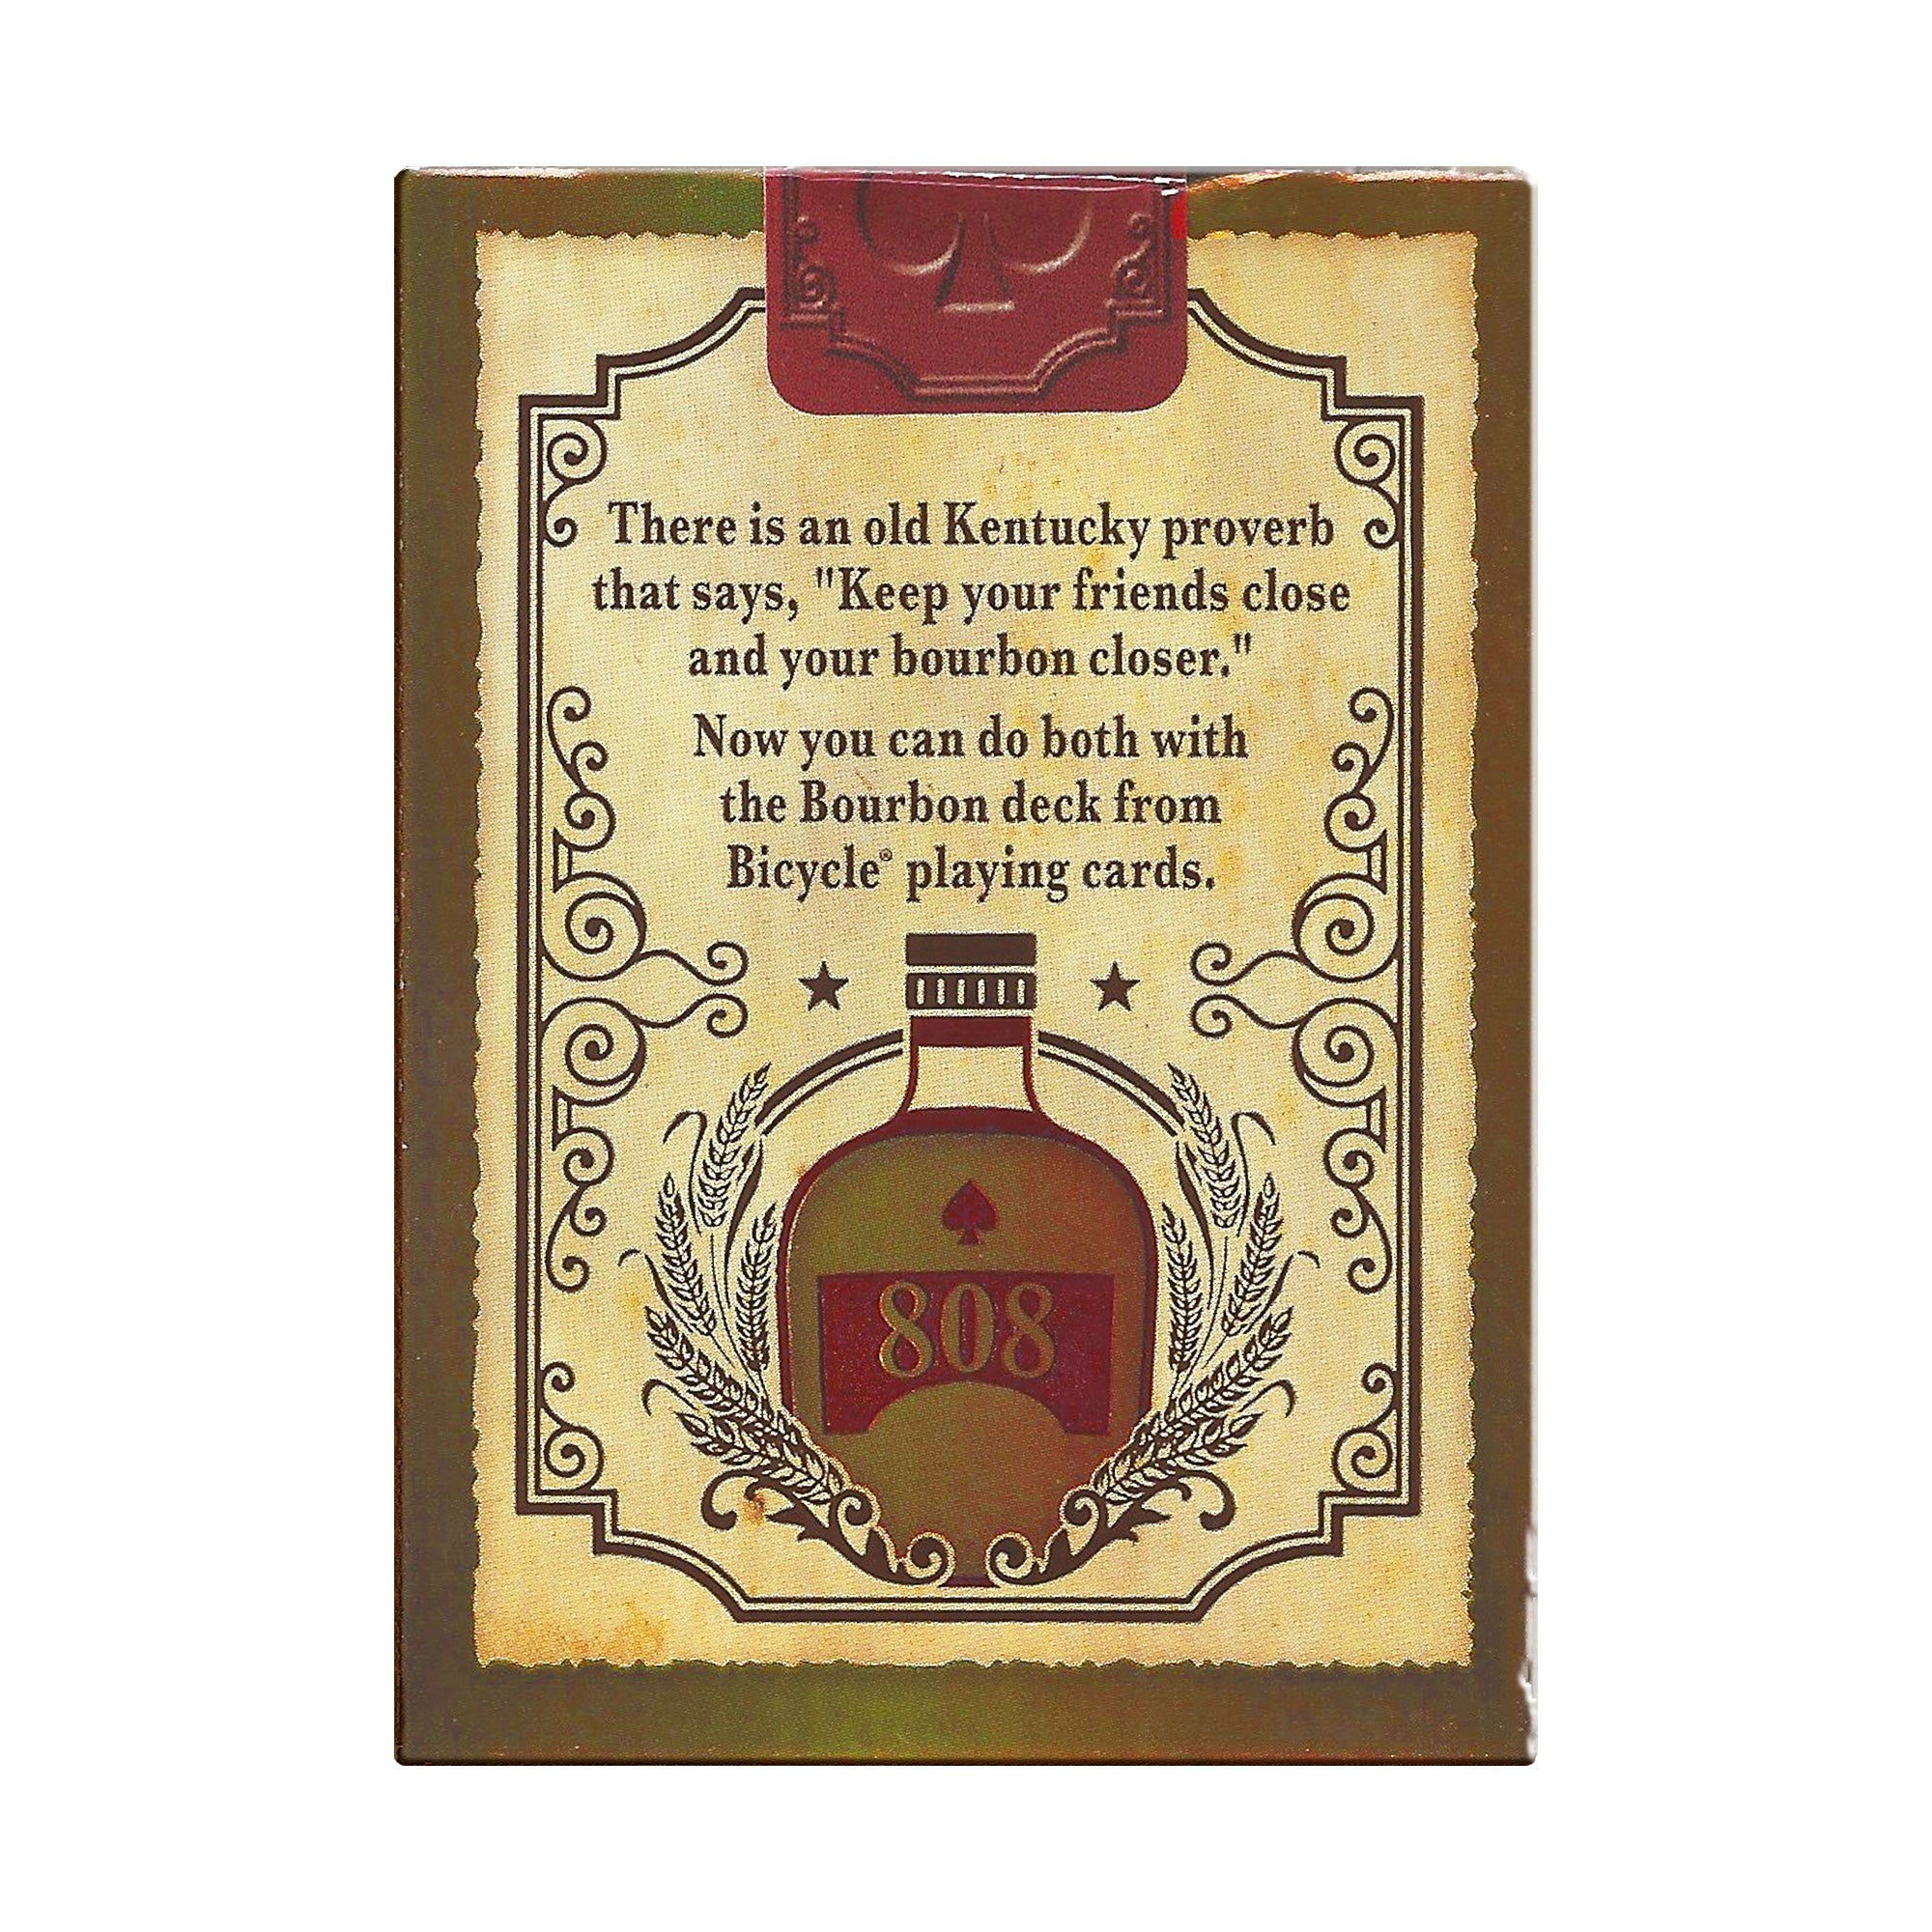 Bourbon Bicycle Playing Cards-Odds and Ends-KY for KY Store